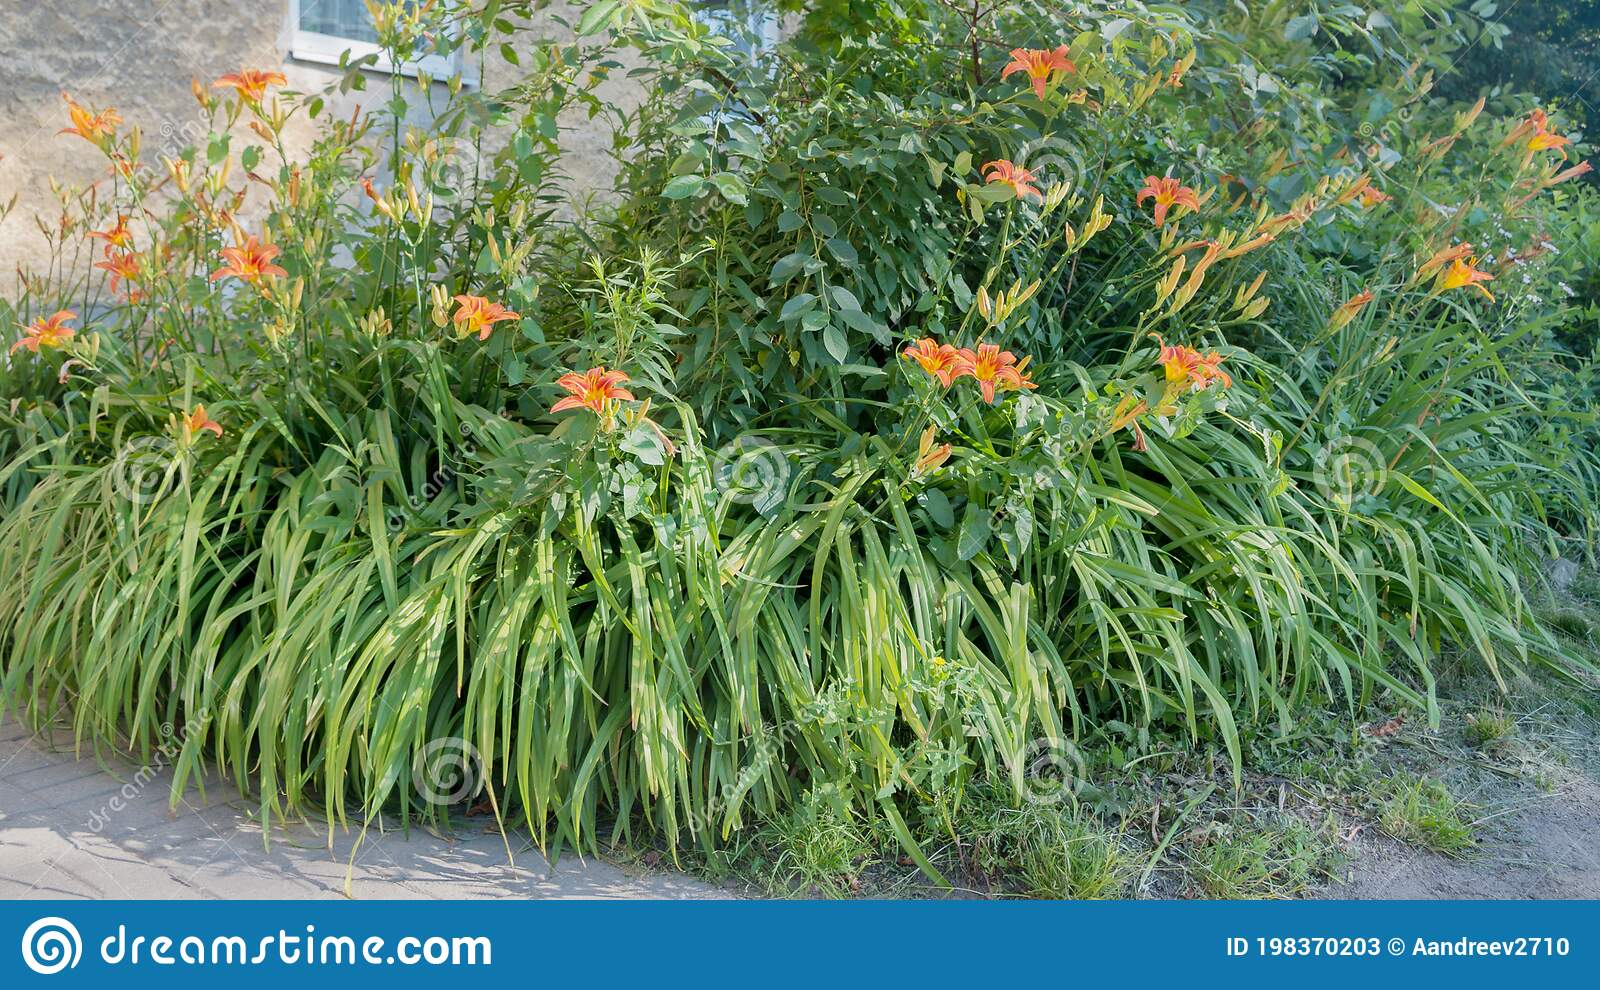 Flower Bed With Blooming Orange Lilium Bulbiferum Lilies Among Grass With Long Leaves Under Windows Of Beige Facade Of Building Stock Image Image Of Corner Front 198370203